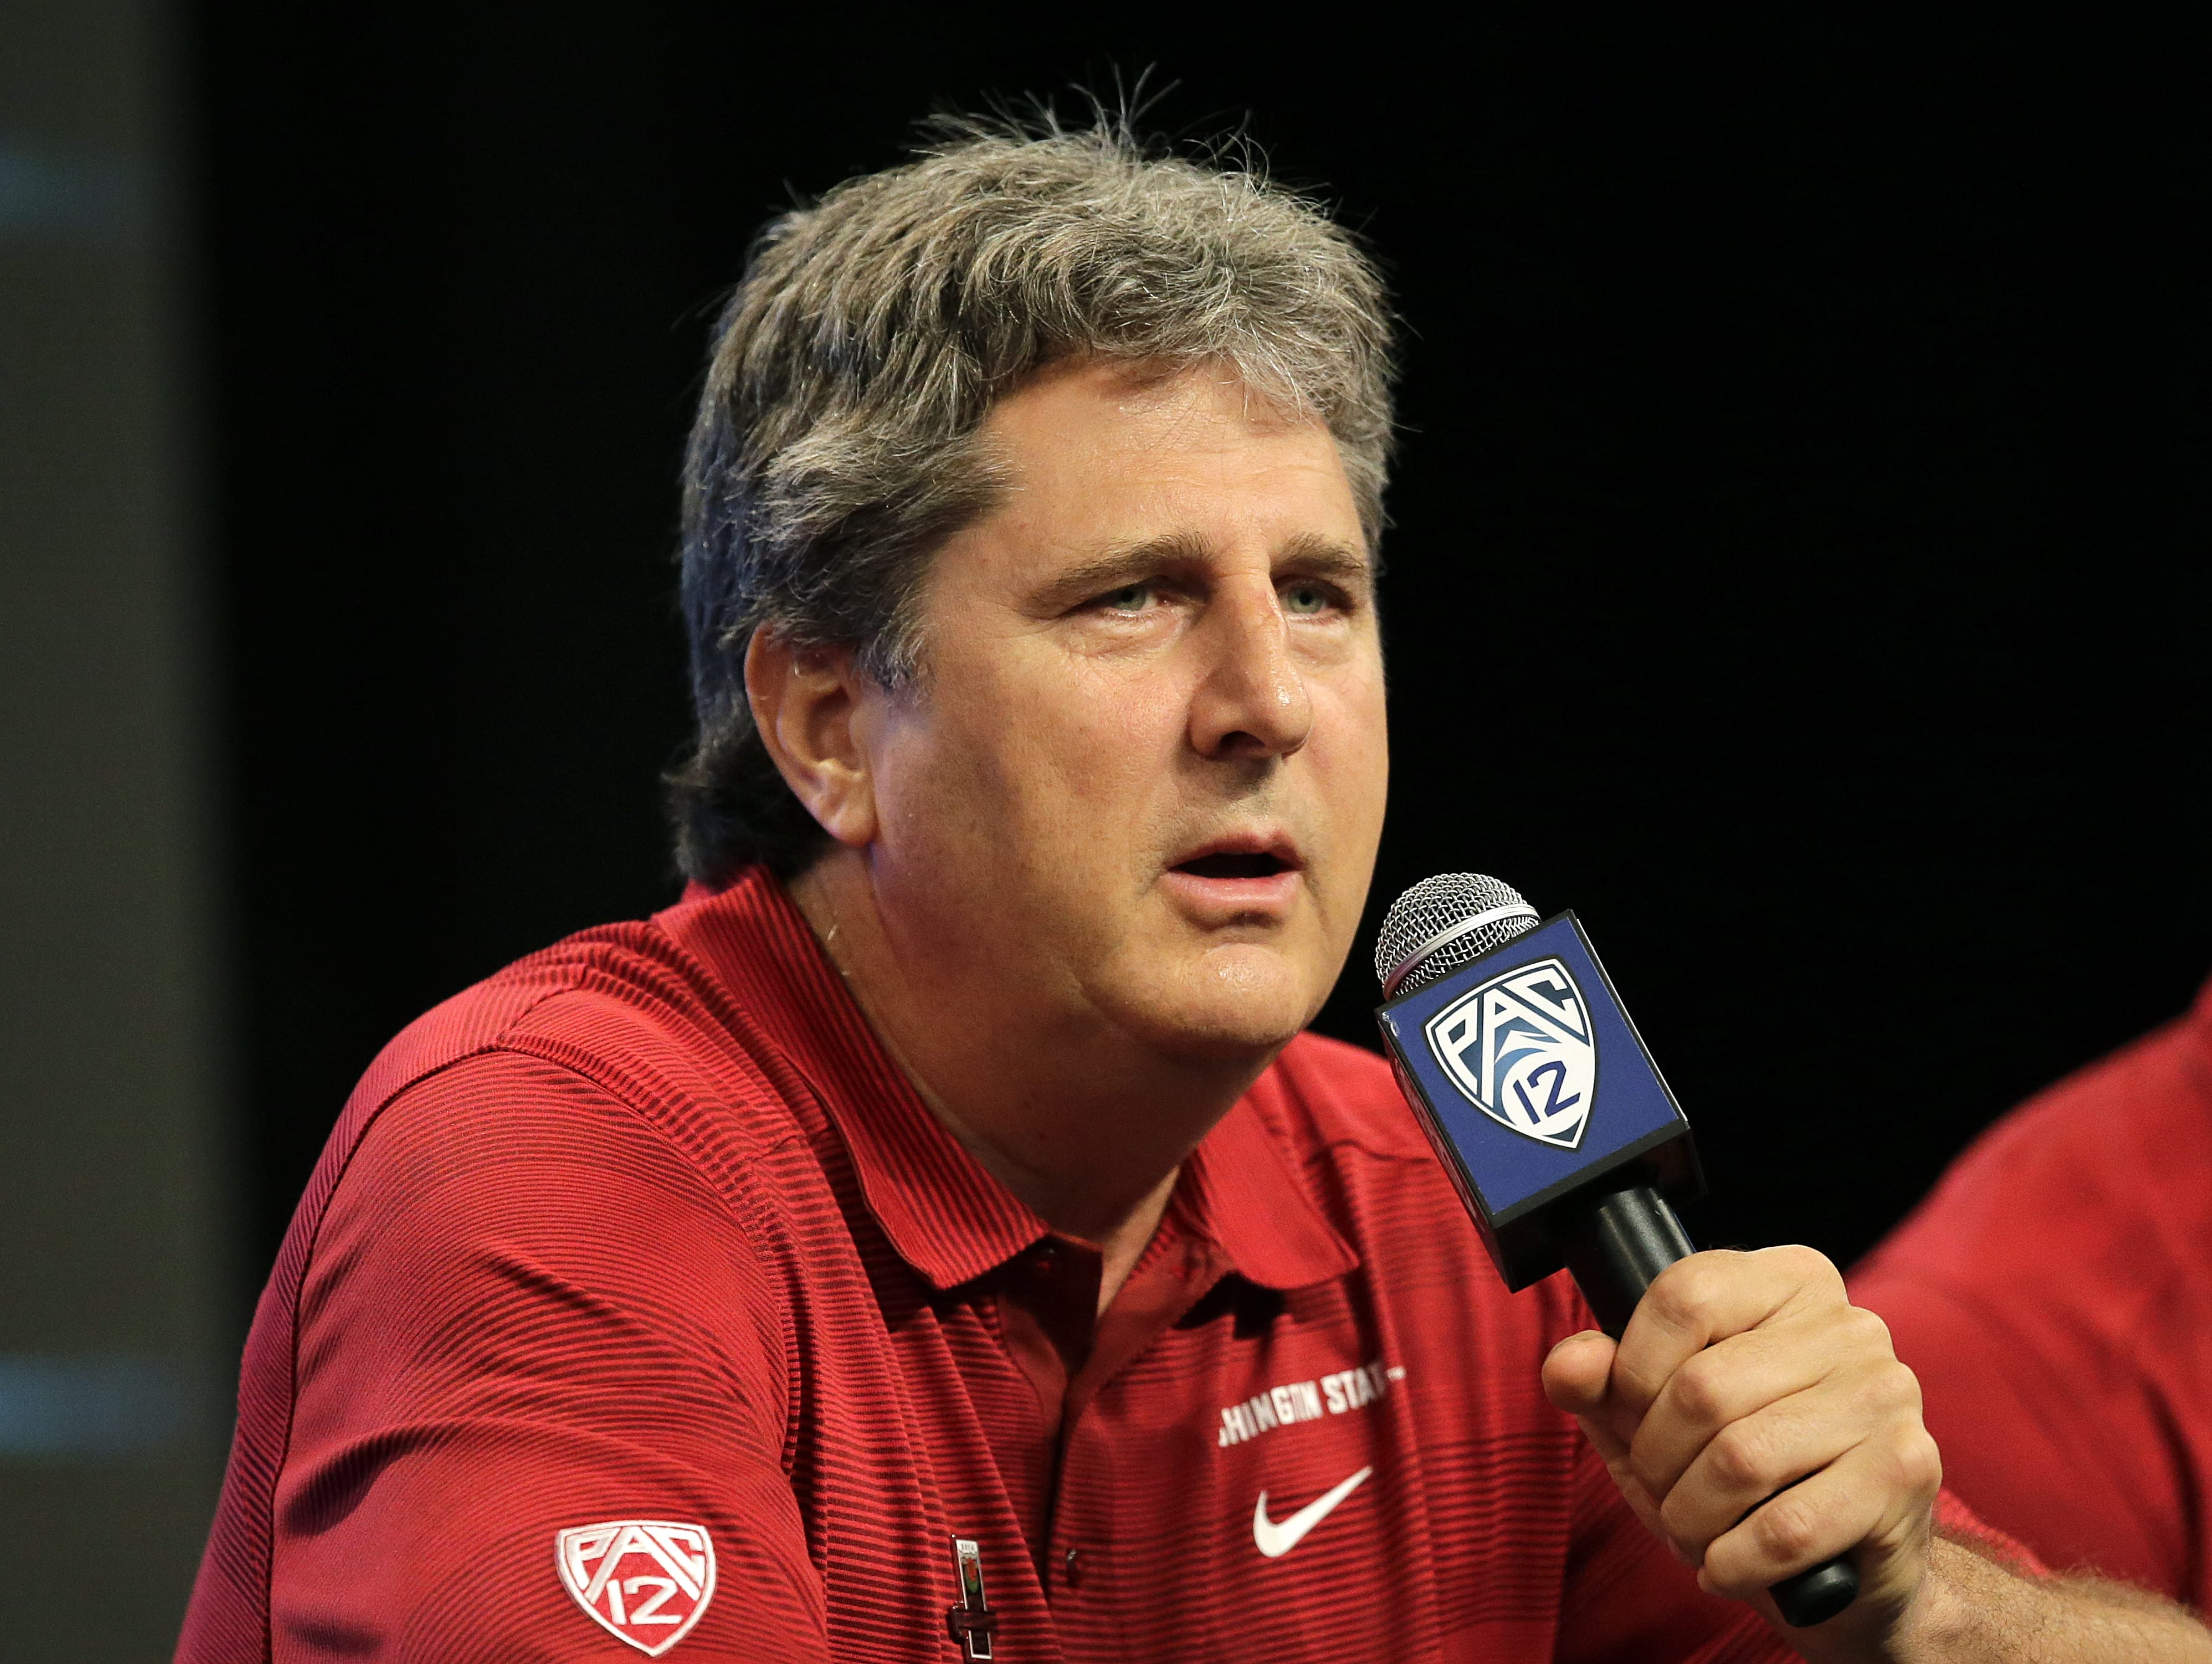 Washington State head coach Mike Leach talks to the media during the NCAA college football Pac-12 Media Day on July 26 in Culver City, Calif.